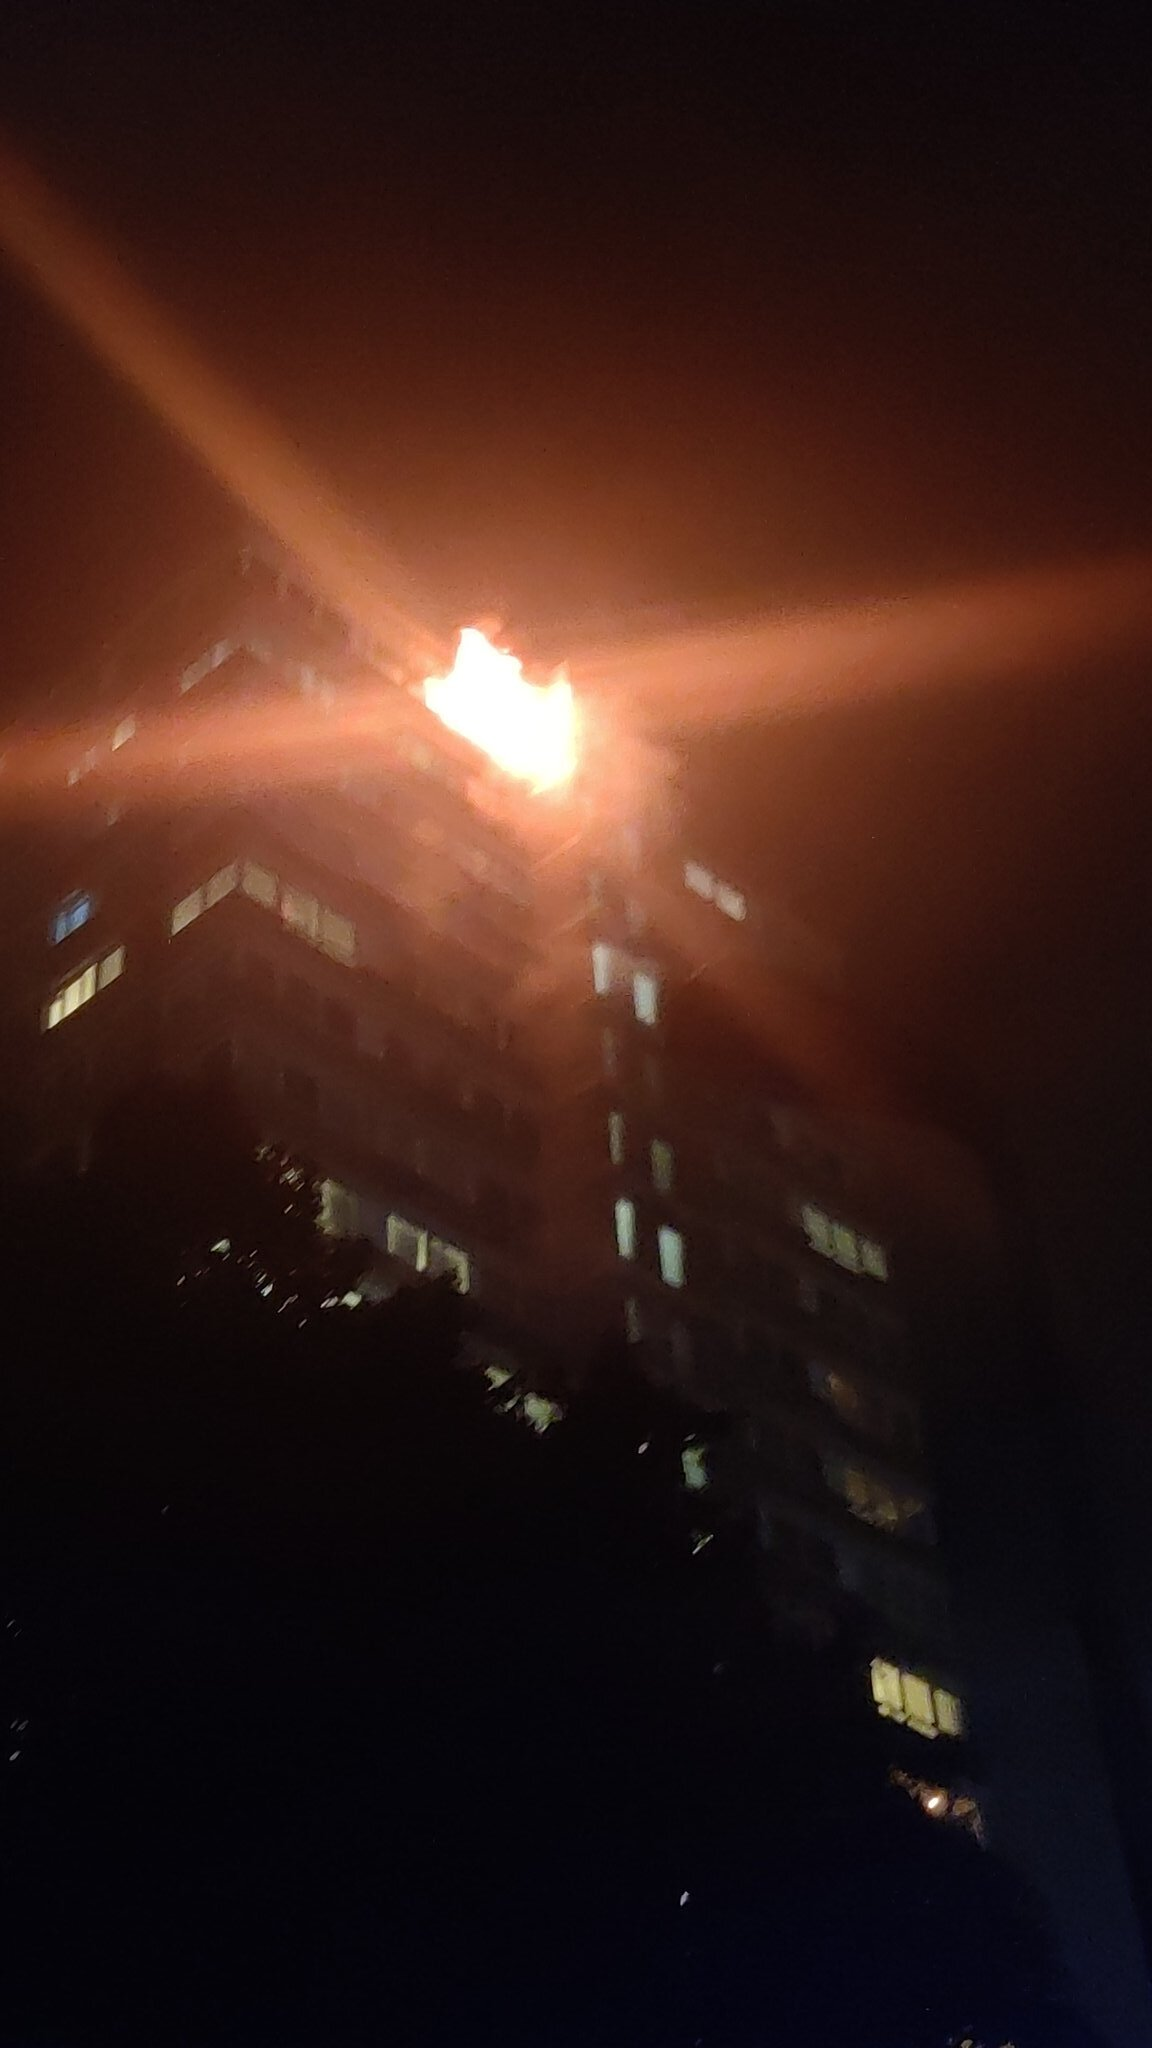 A fire at a tower block on Westbridge Road in Battersea, south-west London